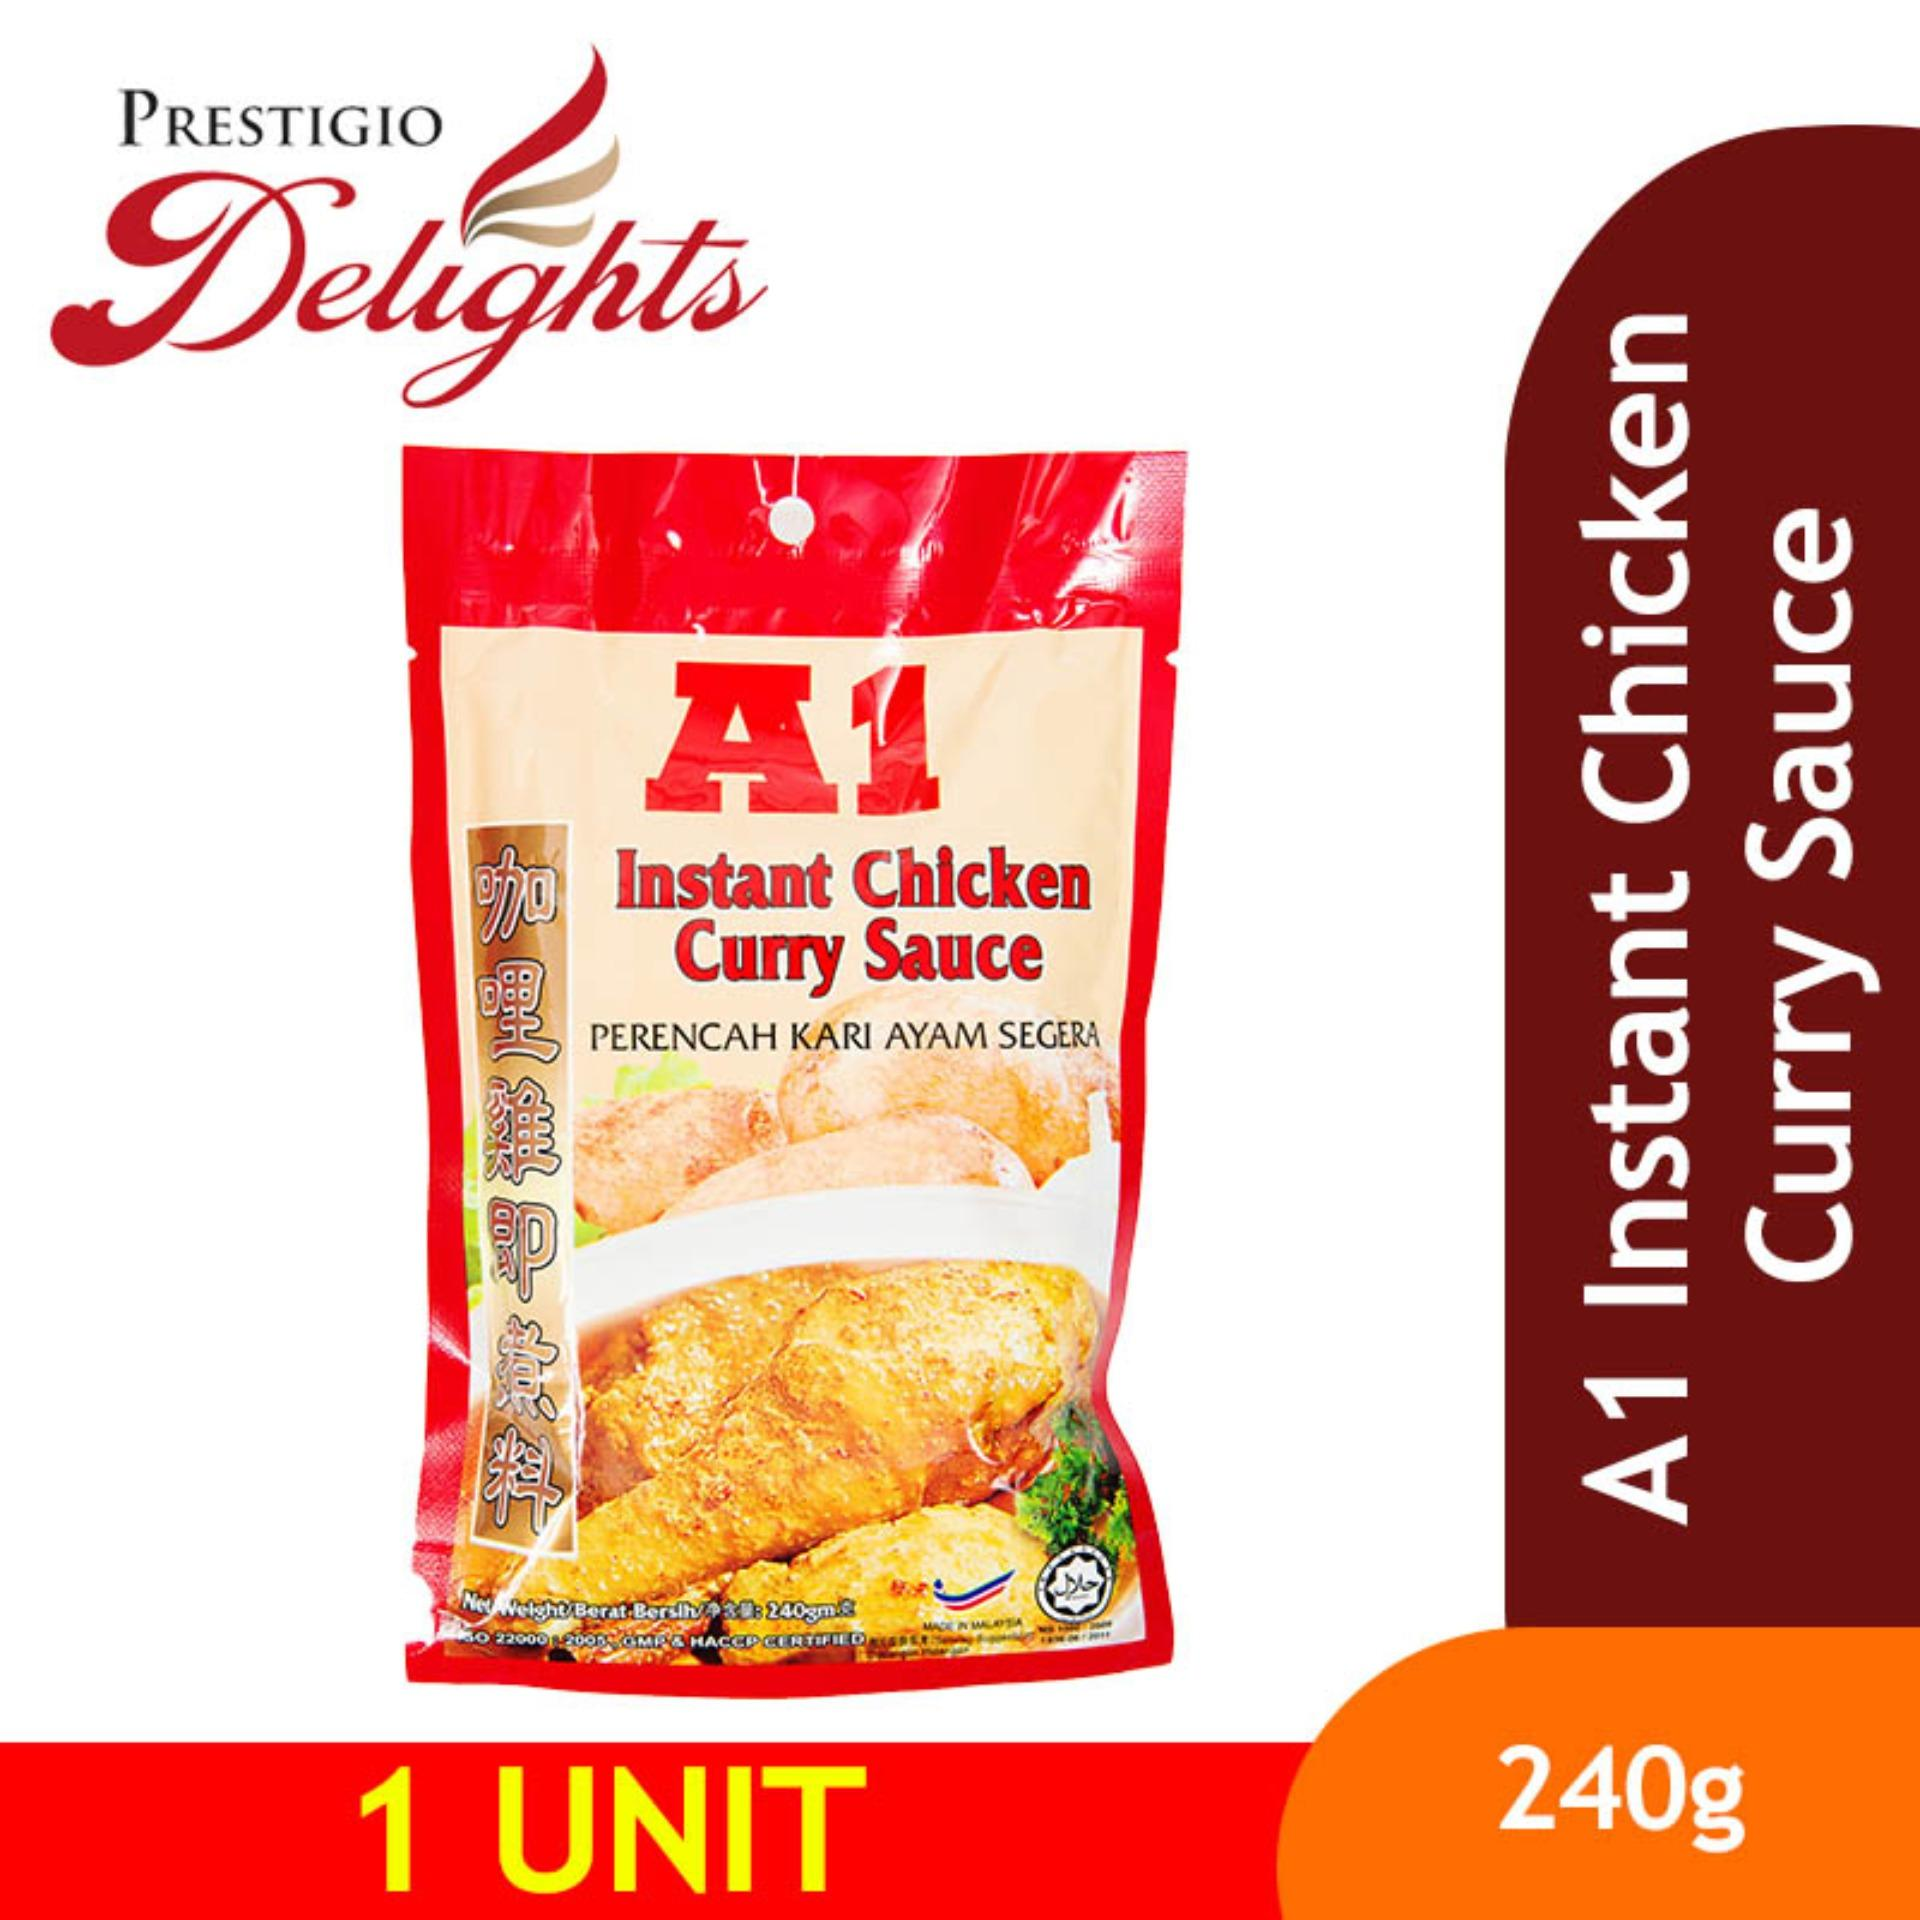 A1 Instant Chicken Curry Sauce 240g By Prestigio Delights.